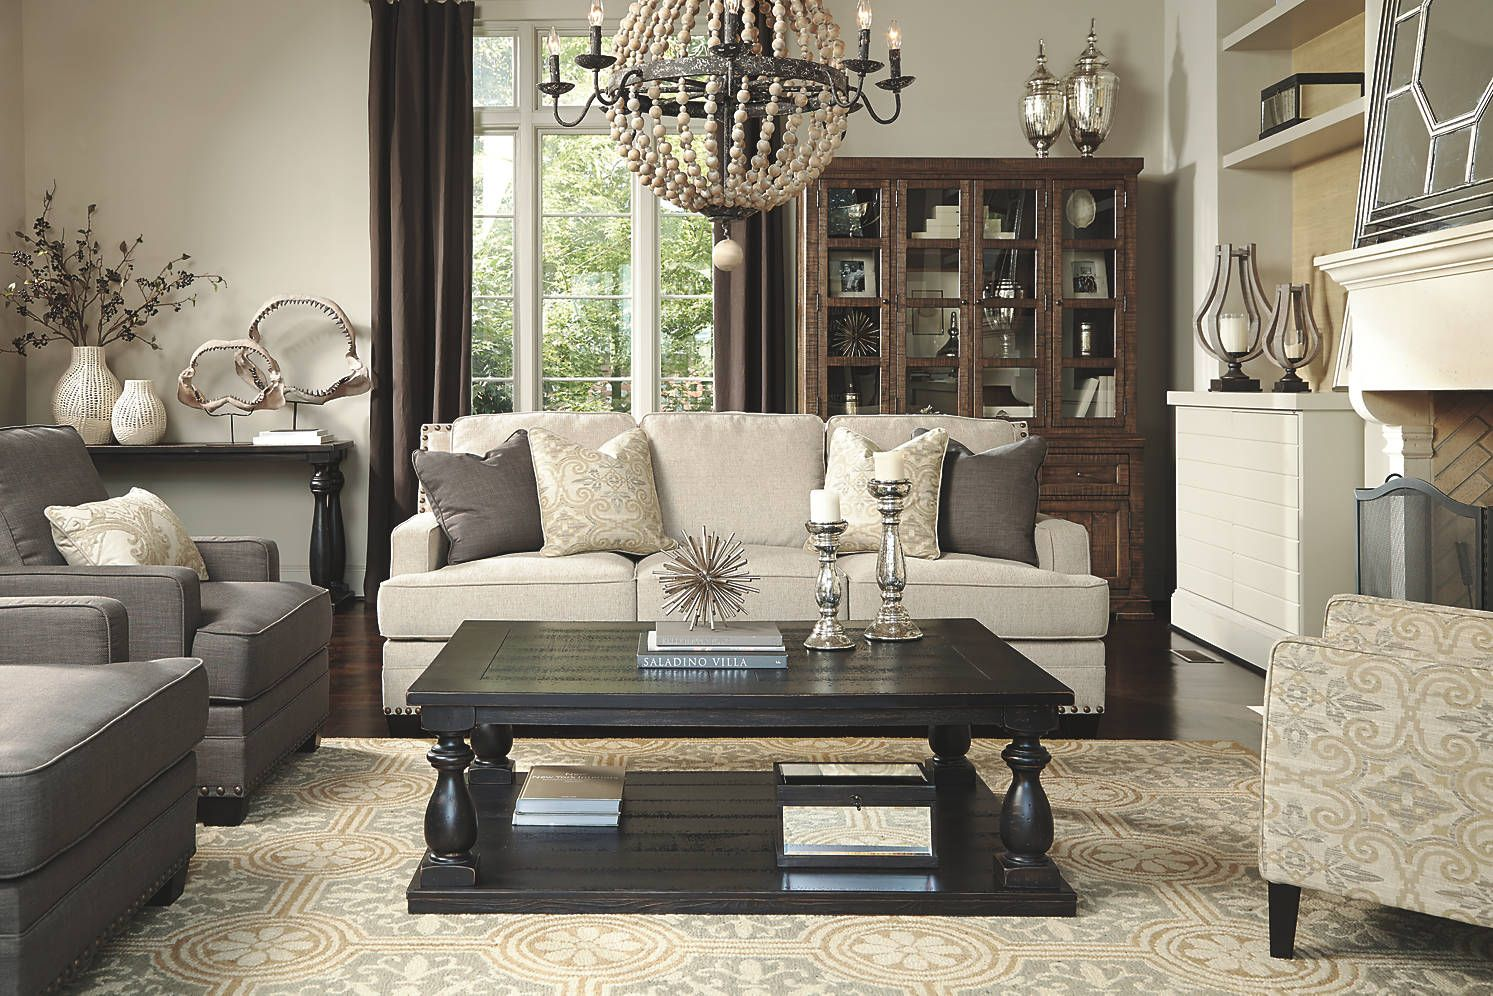 Elegance of the beige couch and patterned accent chair